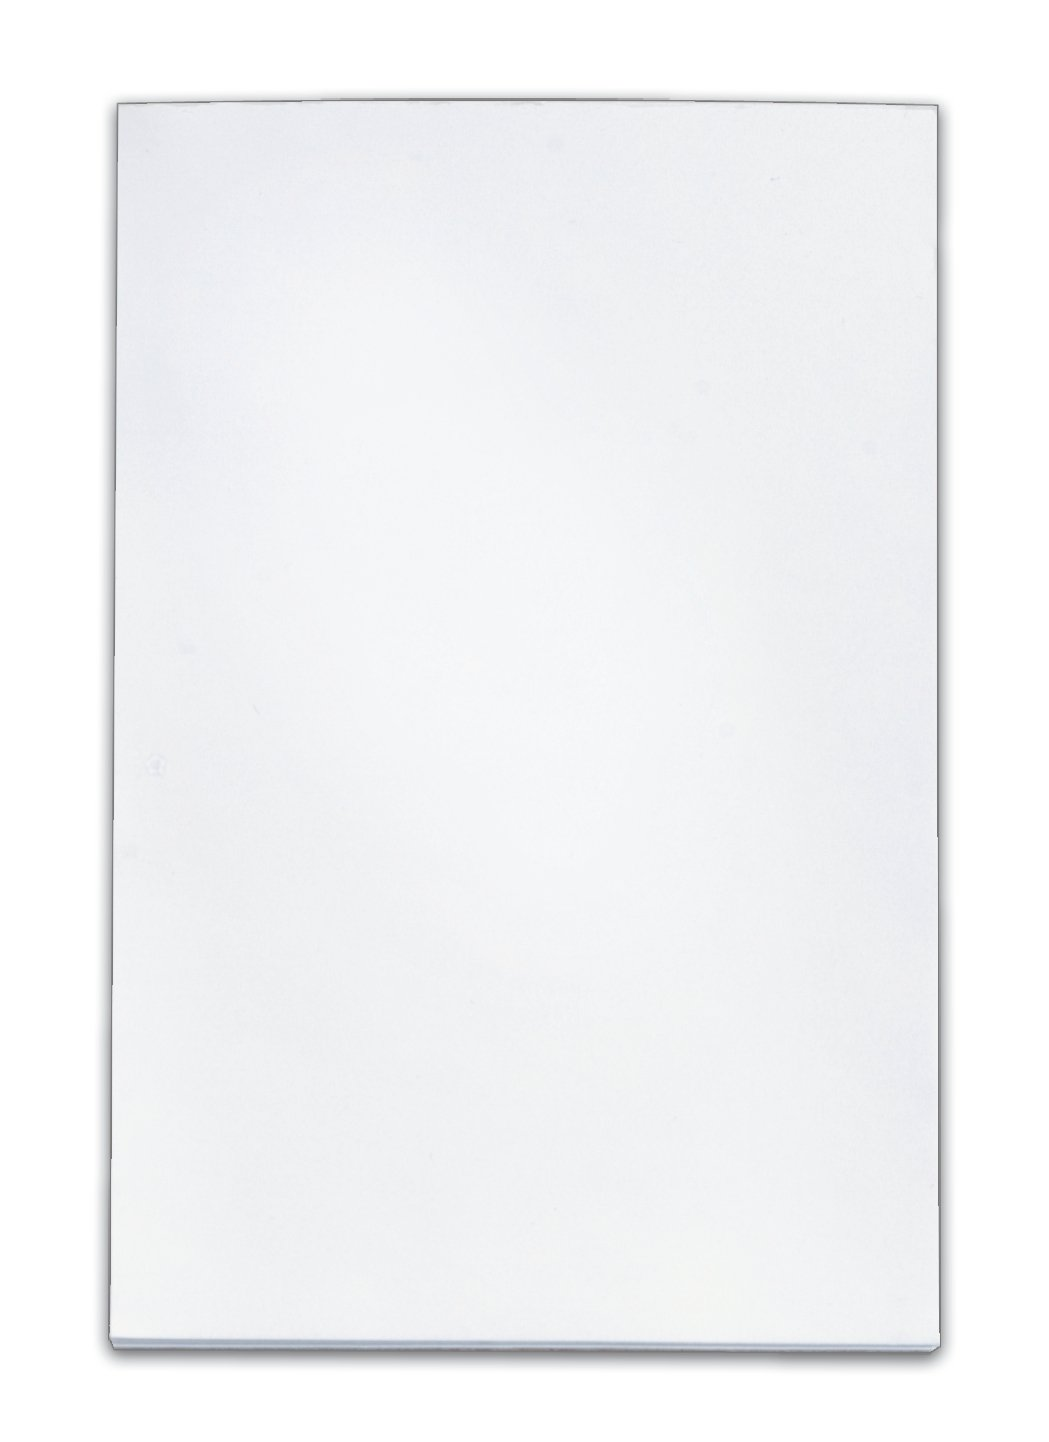 TOPS Memo Pads, 4 x 6 Inches, White, 100 Sheets per Pad, 112 Pads per Carton (7831) by TOPS (Image #1)